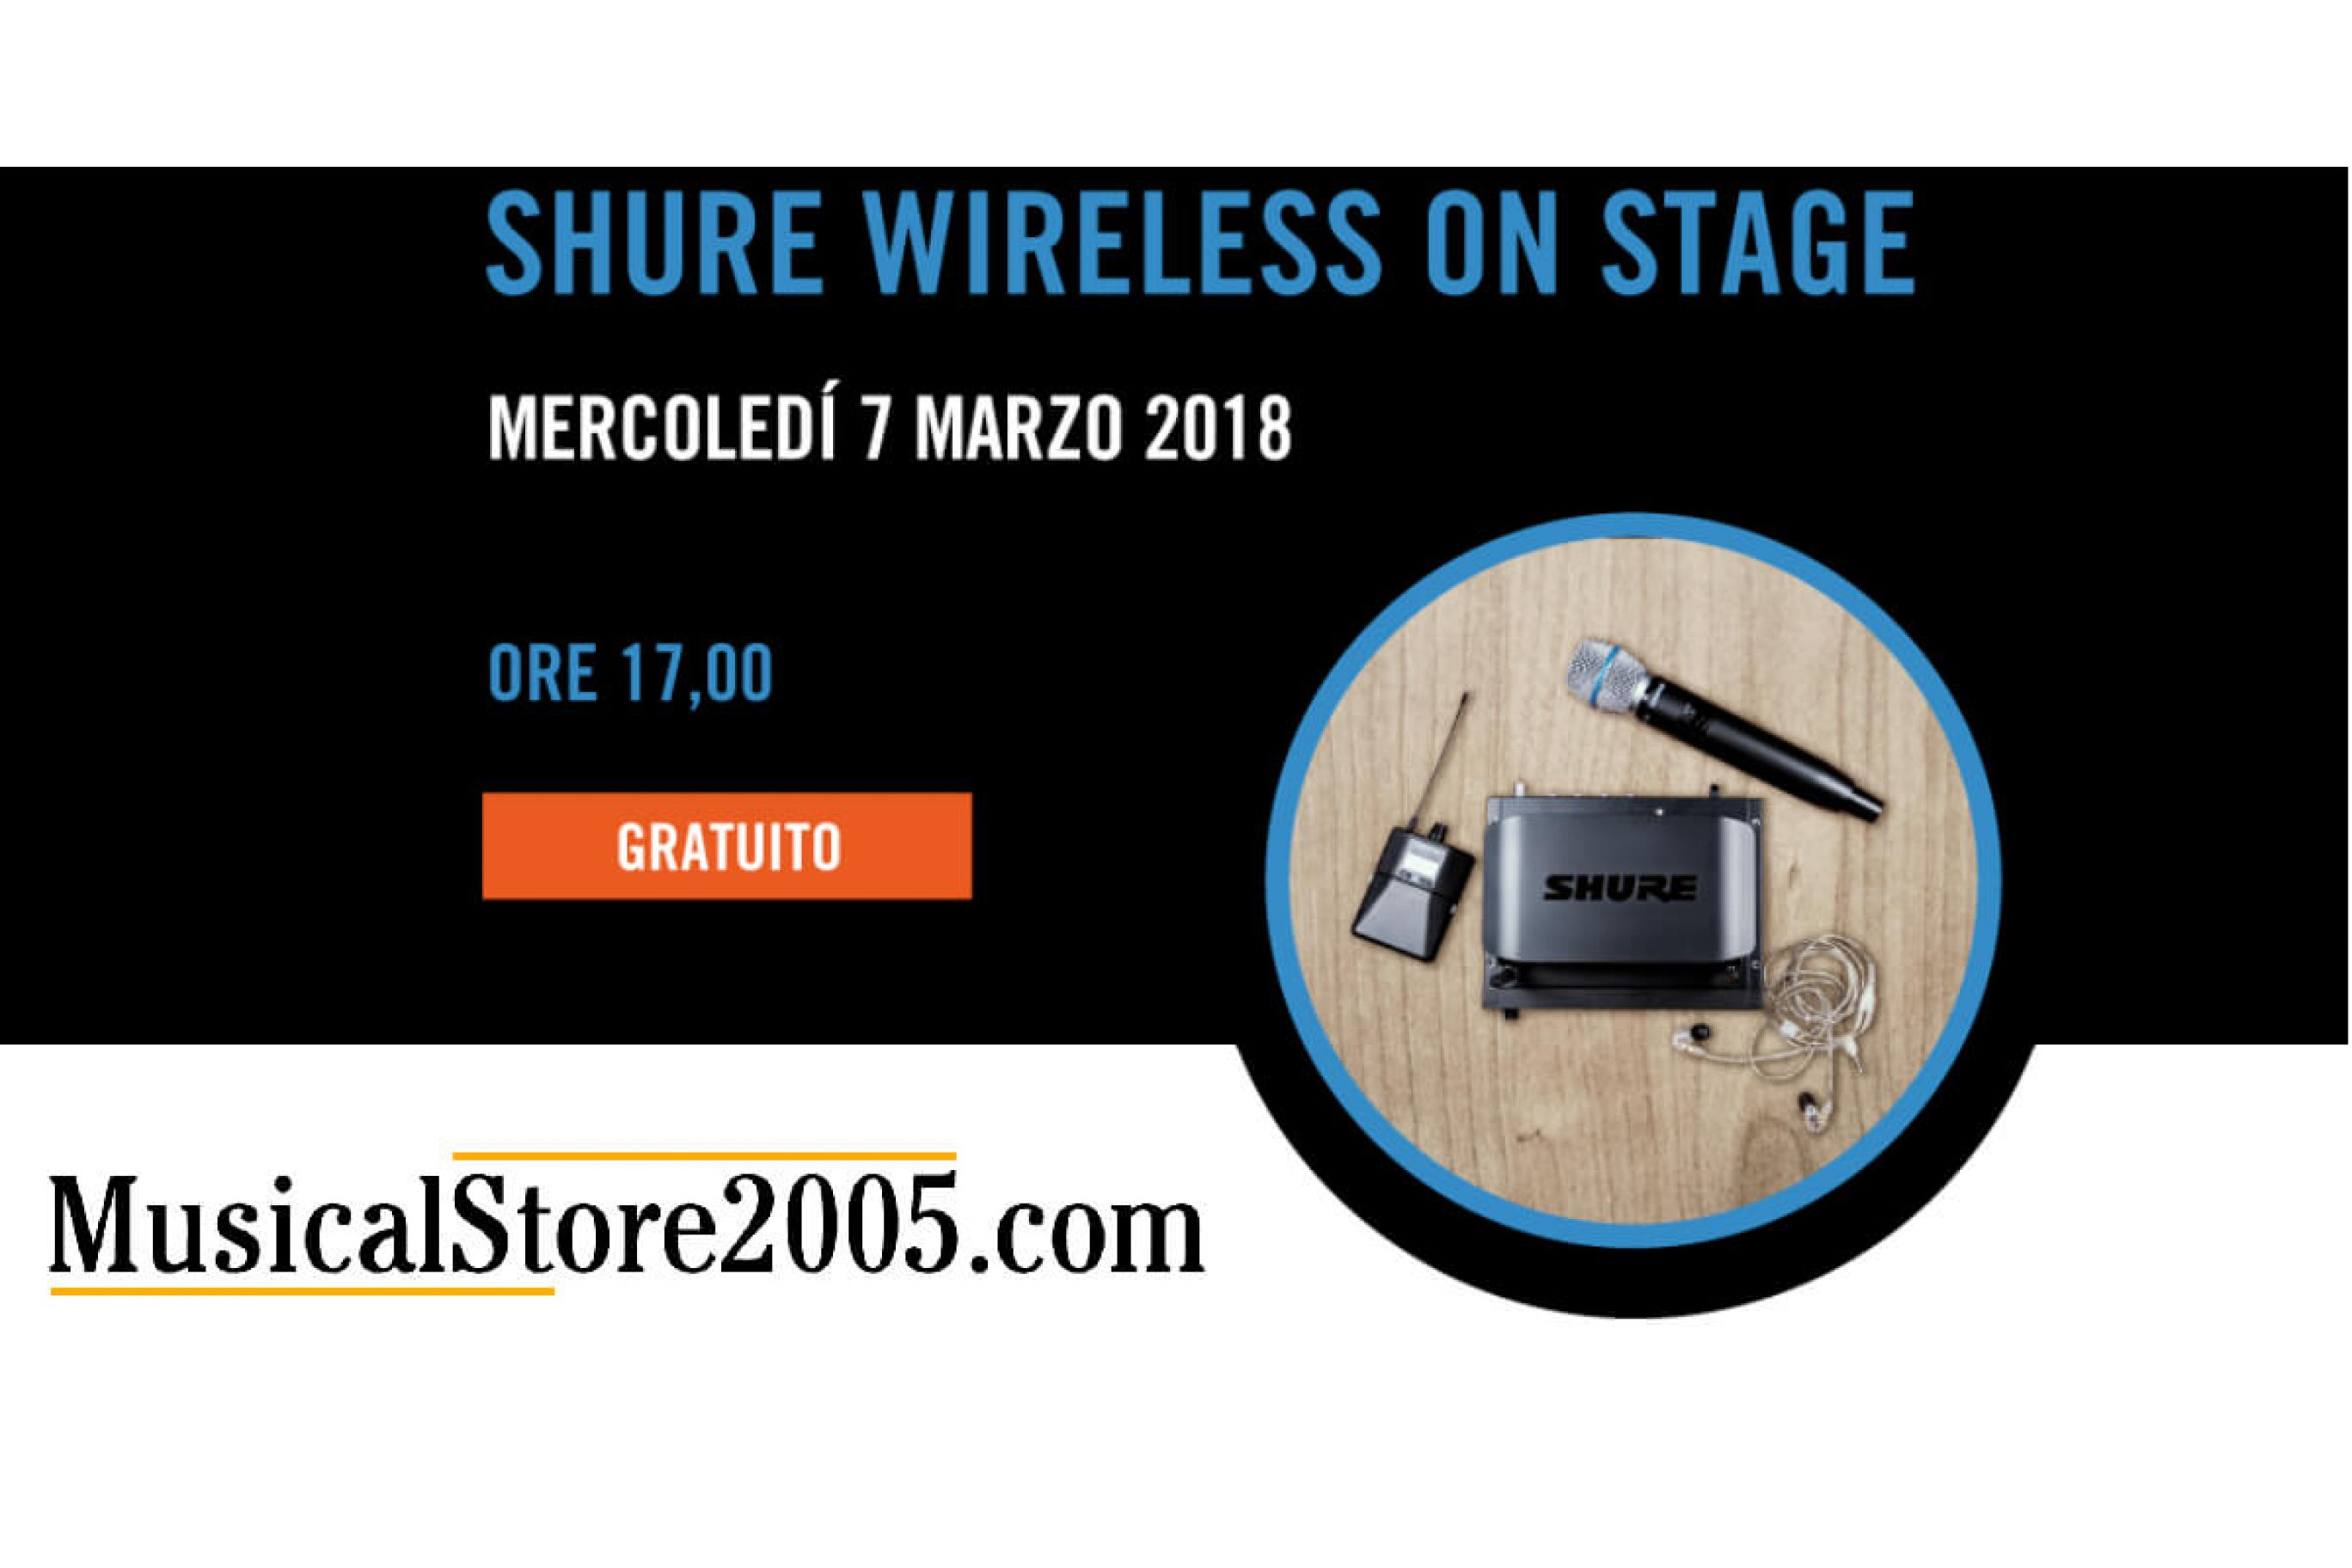 Shure Wireless On Stage Training.